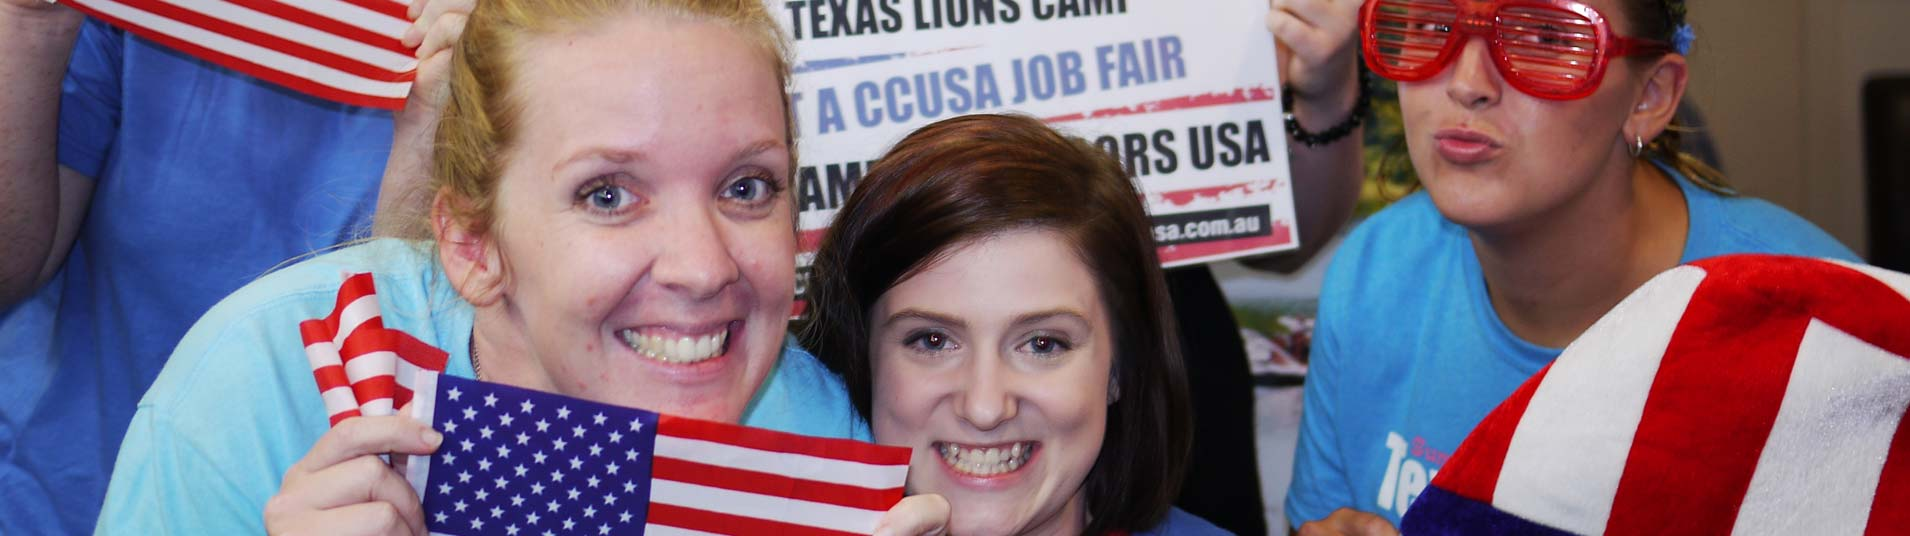 Ccusa Summer Camp Jobs Work And Travel Experiences And Volunteer Adventures In The Usa And Around The World